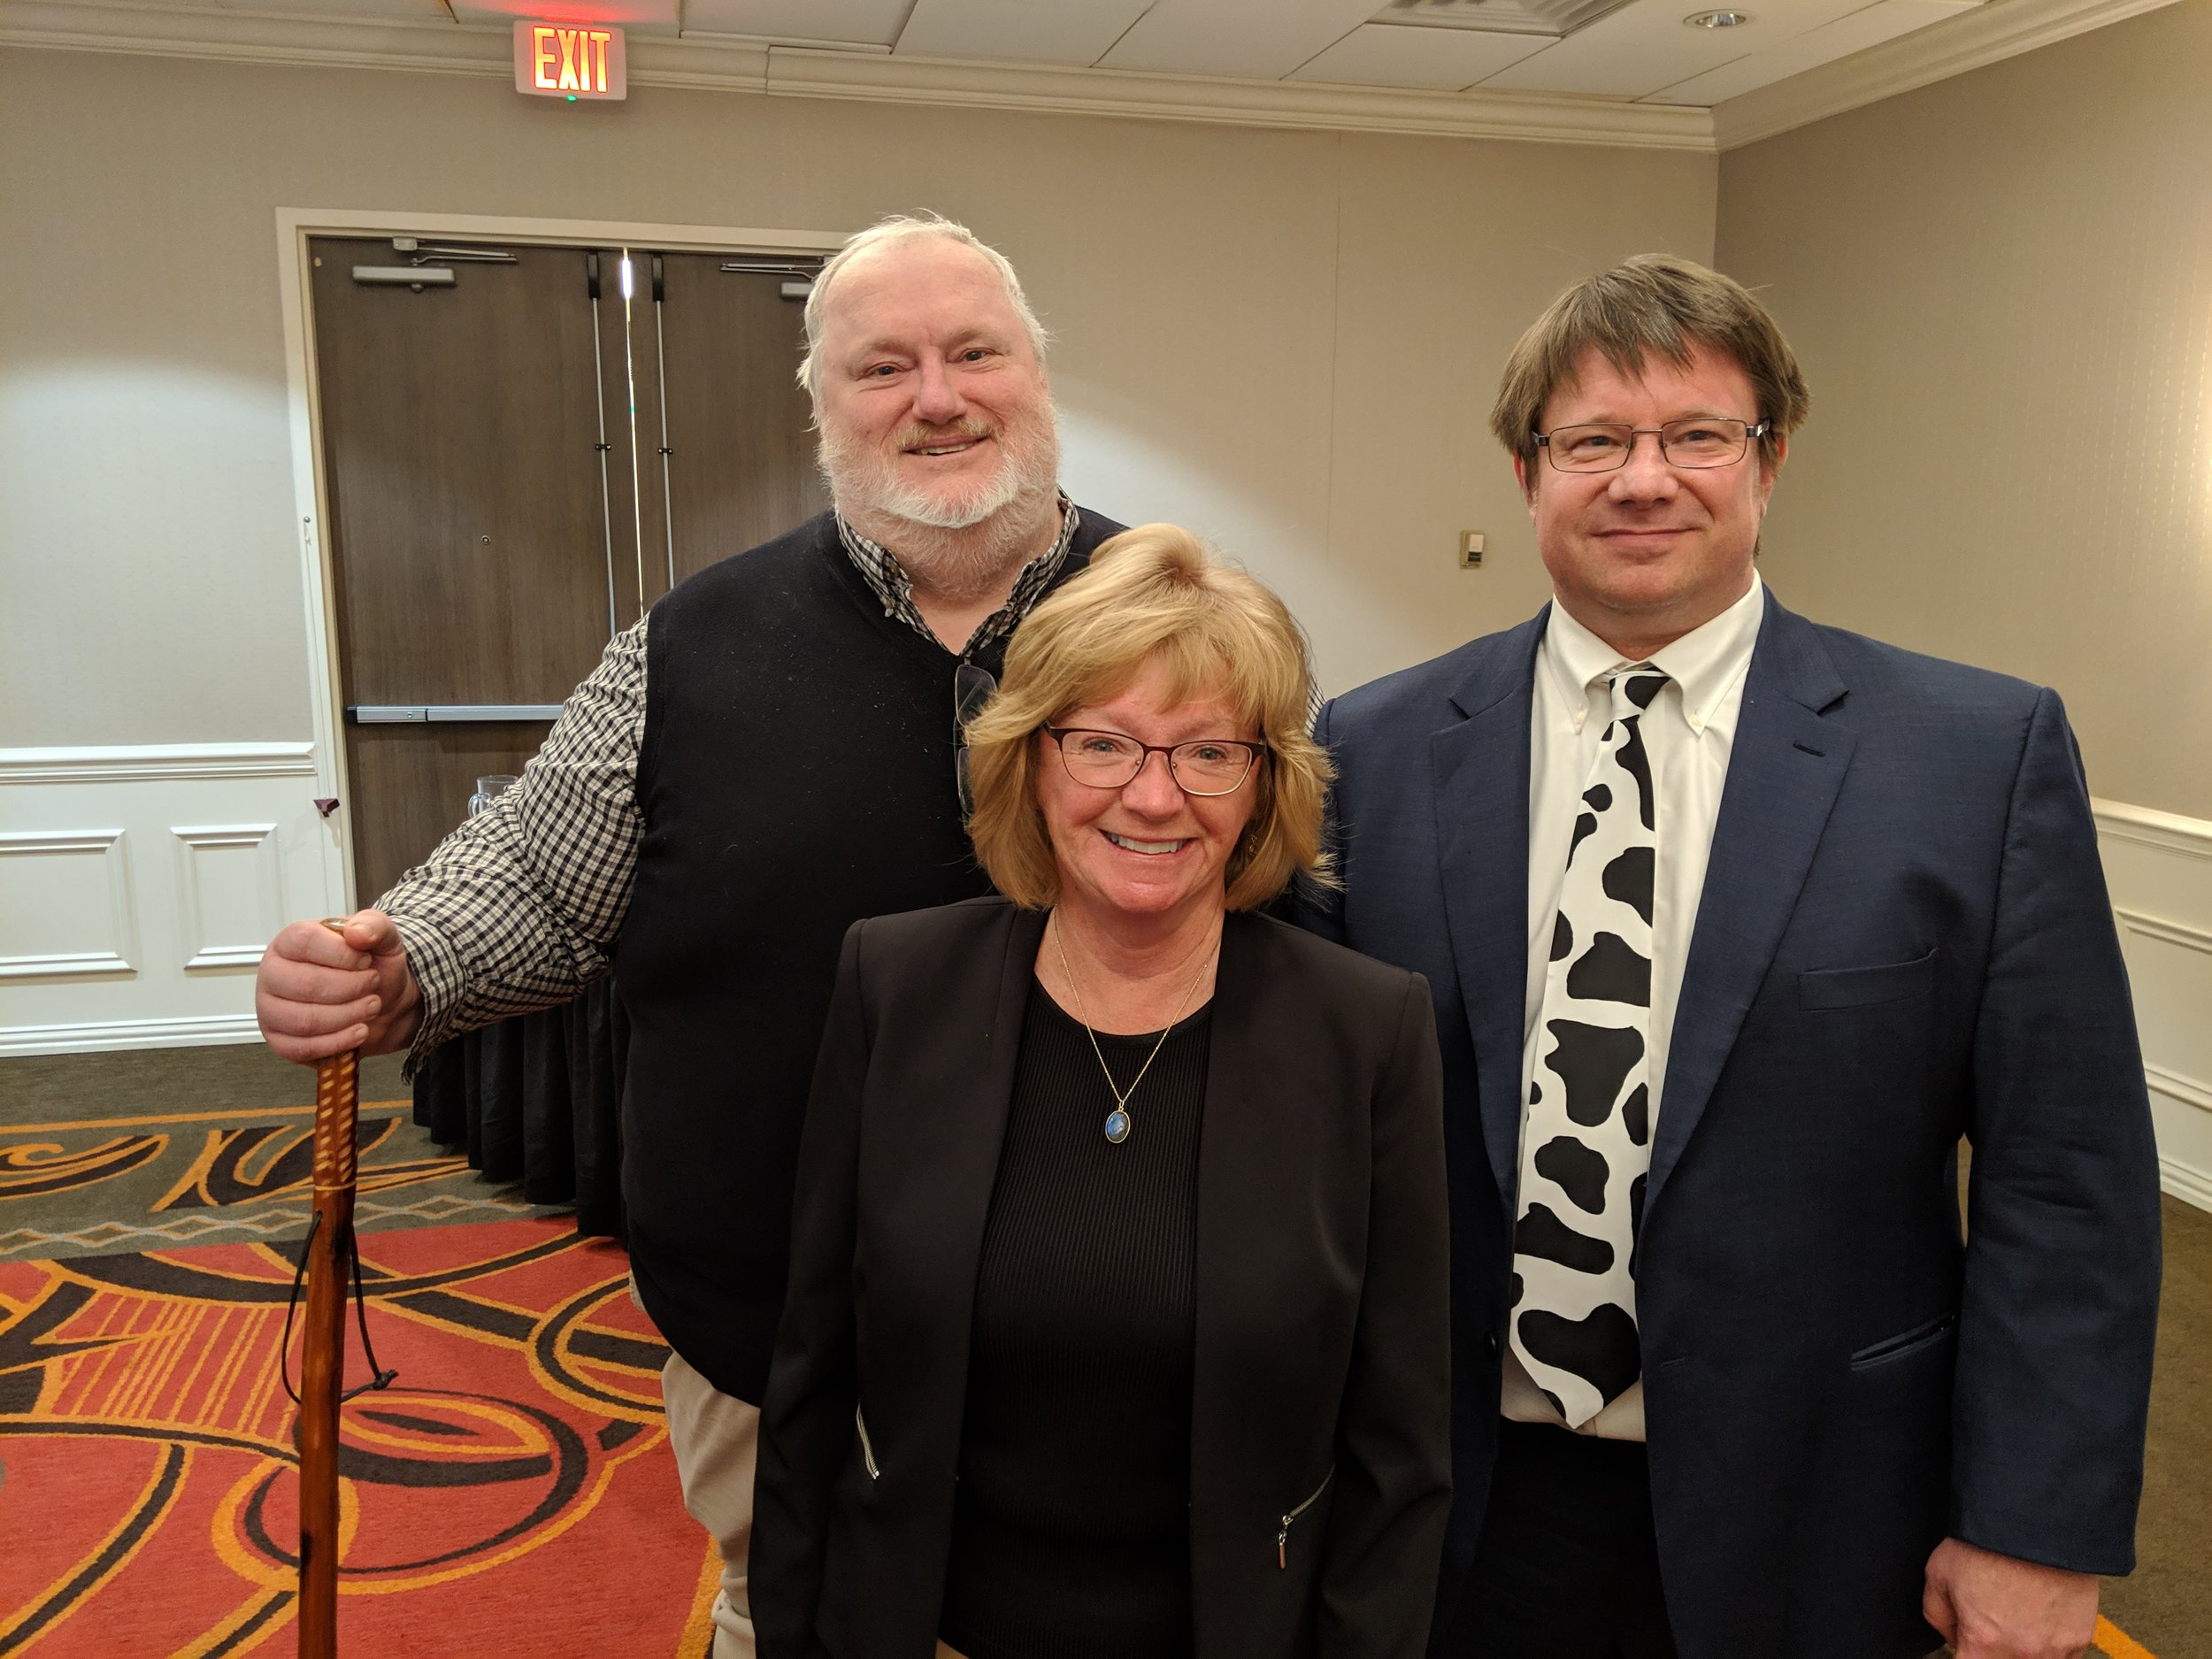 Agri Mark's Bob Wellington (L) and Farm Credit East's Chris Laughton (R) join UConn's Dairy Science professor Sheila Andrew at the March 21st Dairy Nutrition Conference in Windsor Locks CT.